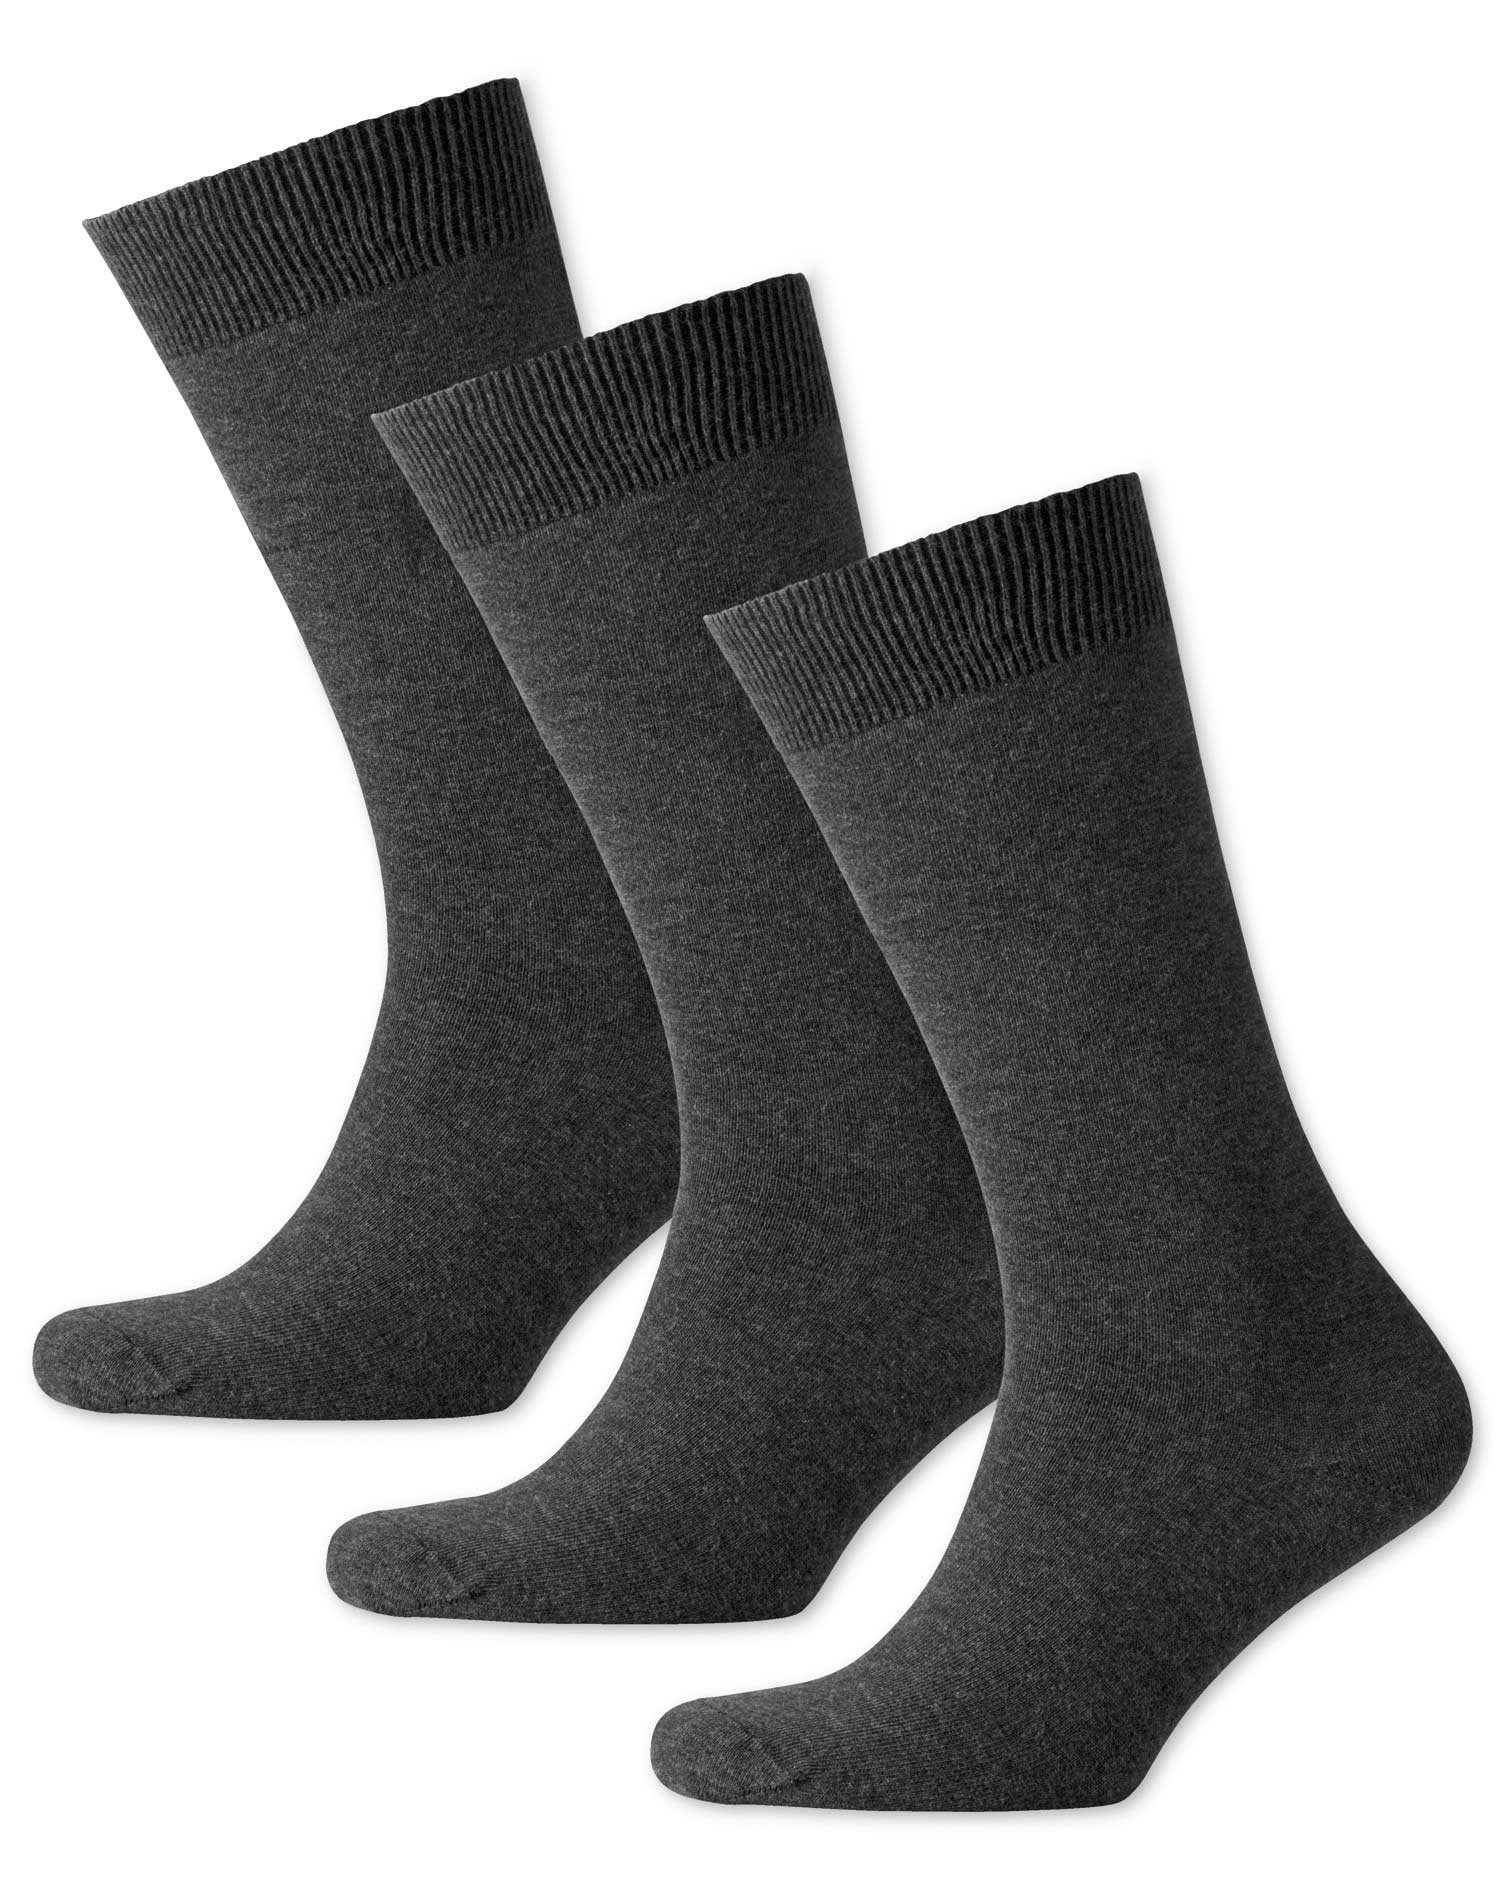 Grey Cotton Rich 3 Pack Socks Size Medium by Charles Tyrwhitt